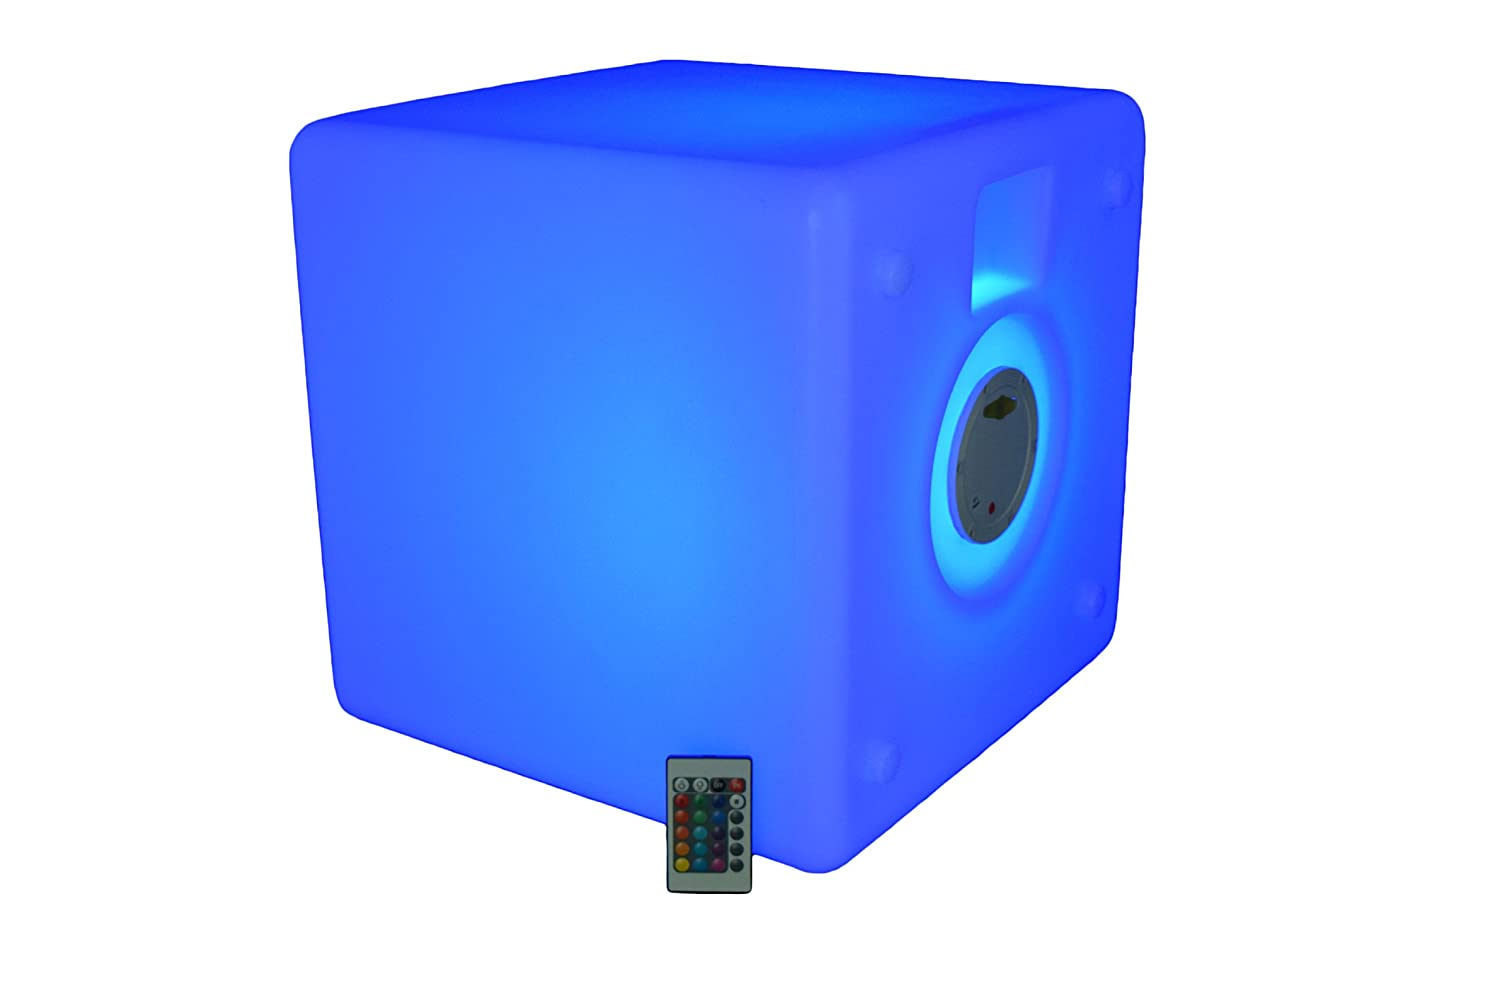 ... Cube   End Table   Ottoman   LED Cube 16 Color Changing Furniture With  Remote Control   Cordless, Waterproof, Rechargeable   Glow Light Up  Furniture ...